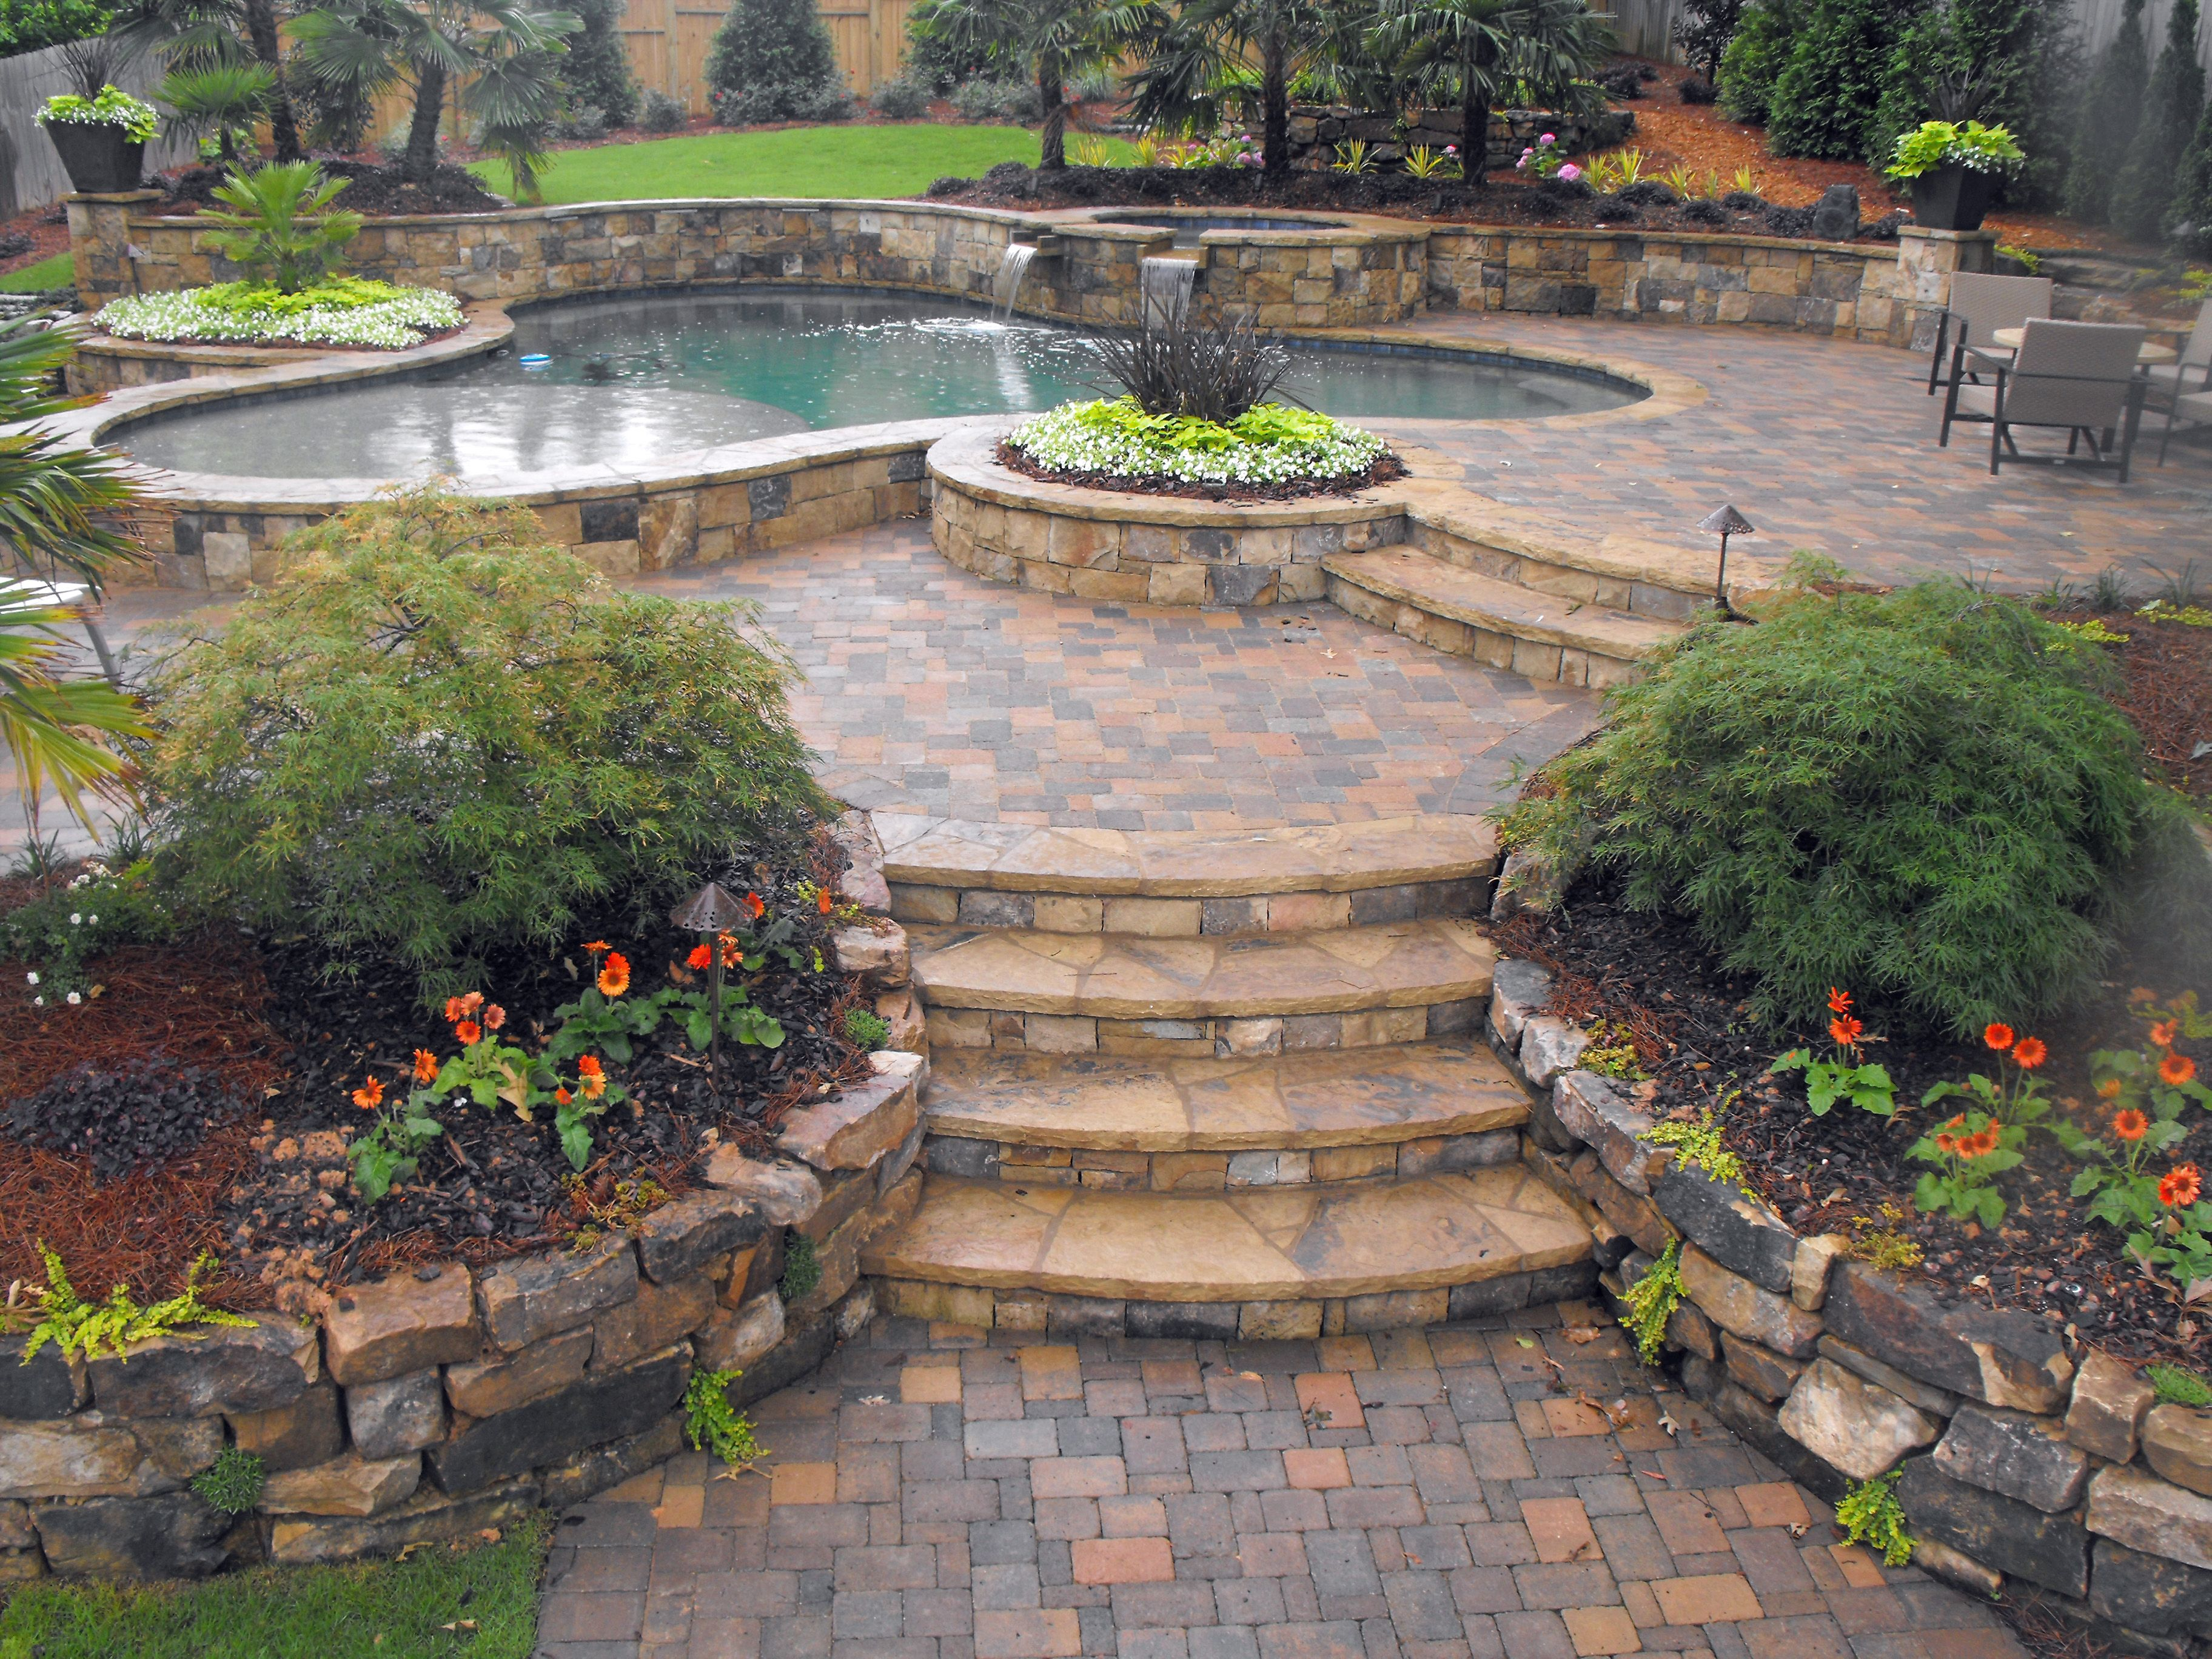 Backyard Hardscape Ideas large backyard patio design with pergola built in fire pit and seating wall 22 Best Images About Back Yard Ideas On Fire Pits Image Of Hardscape Ideas For Backyard